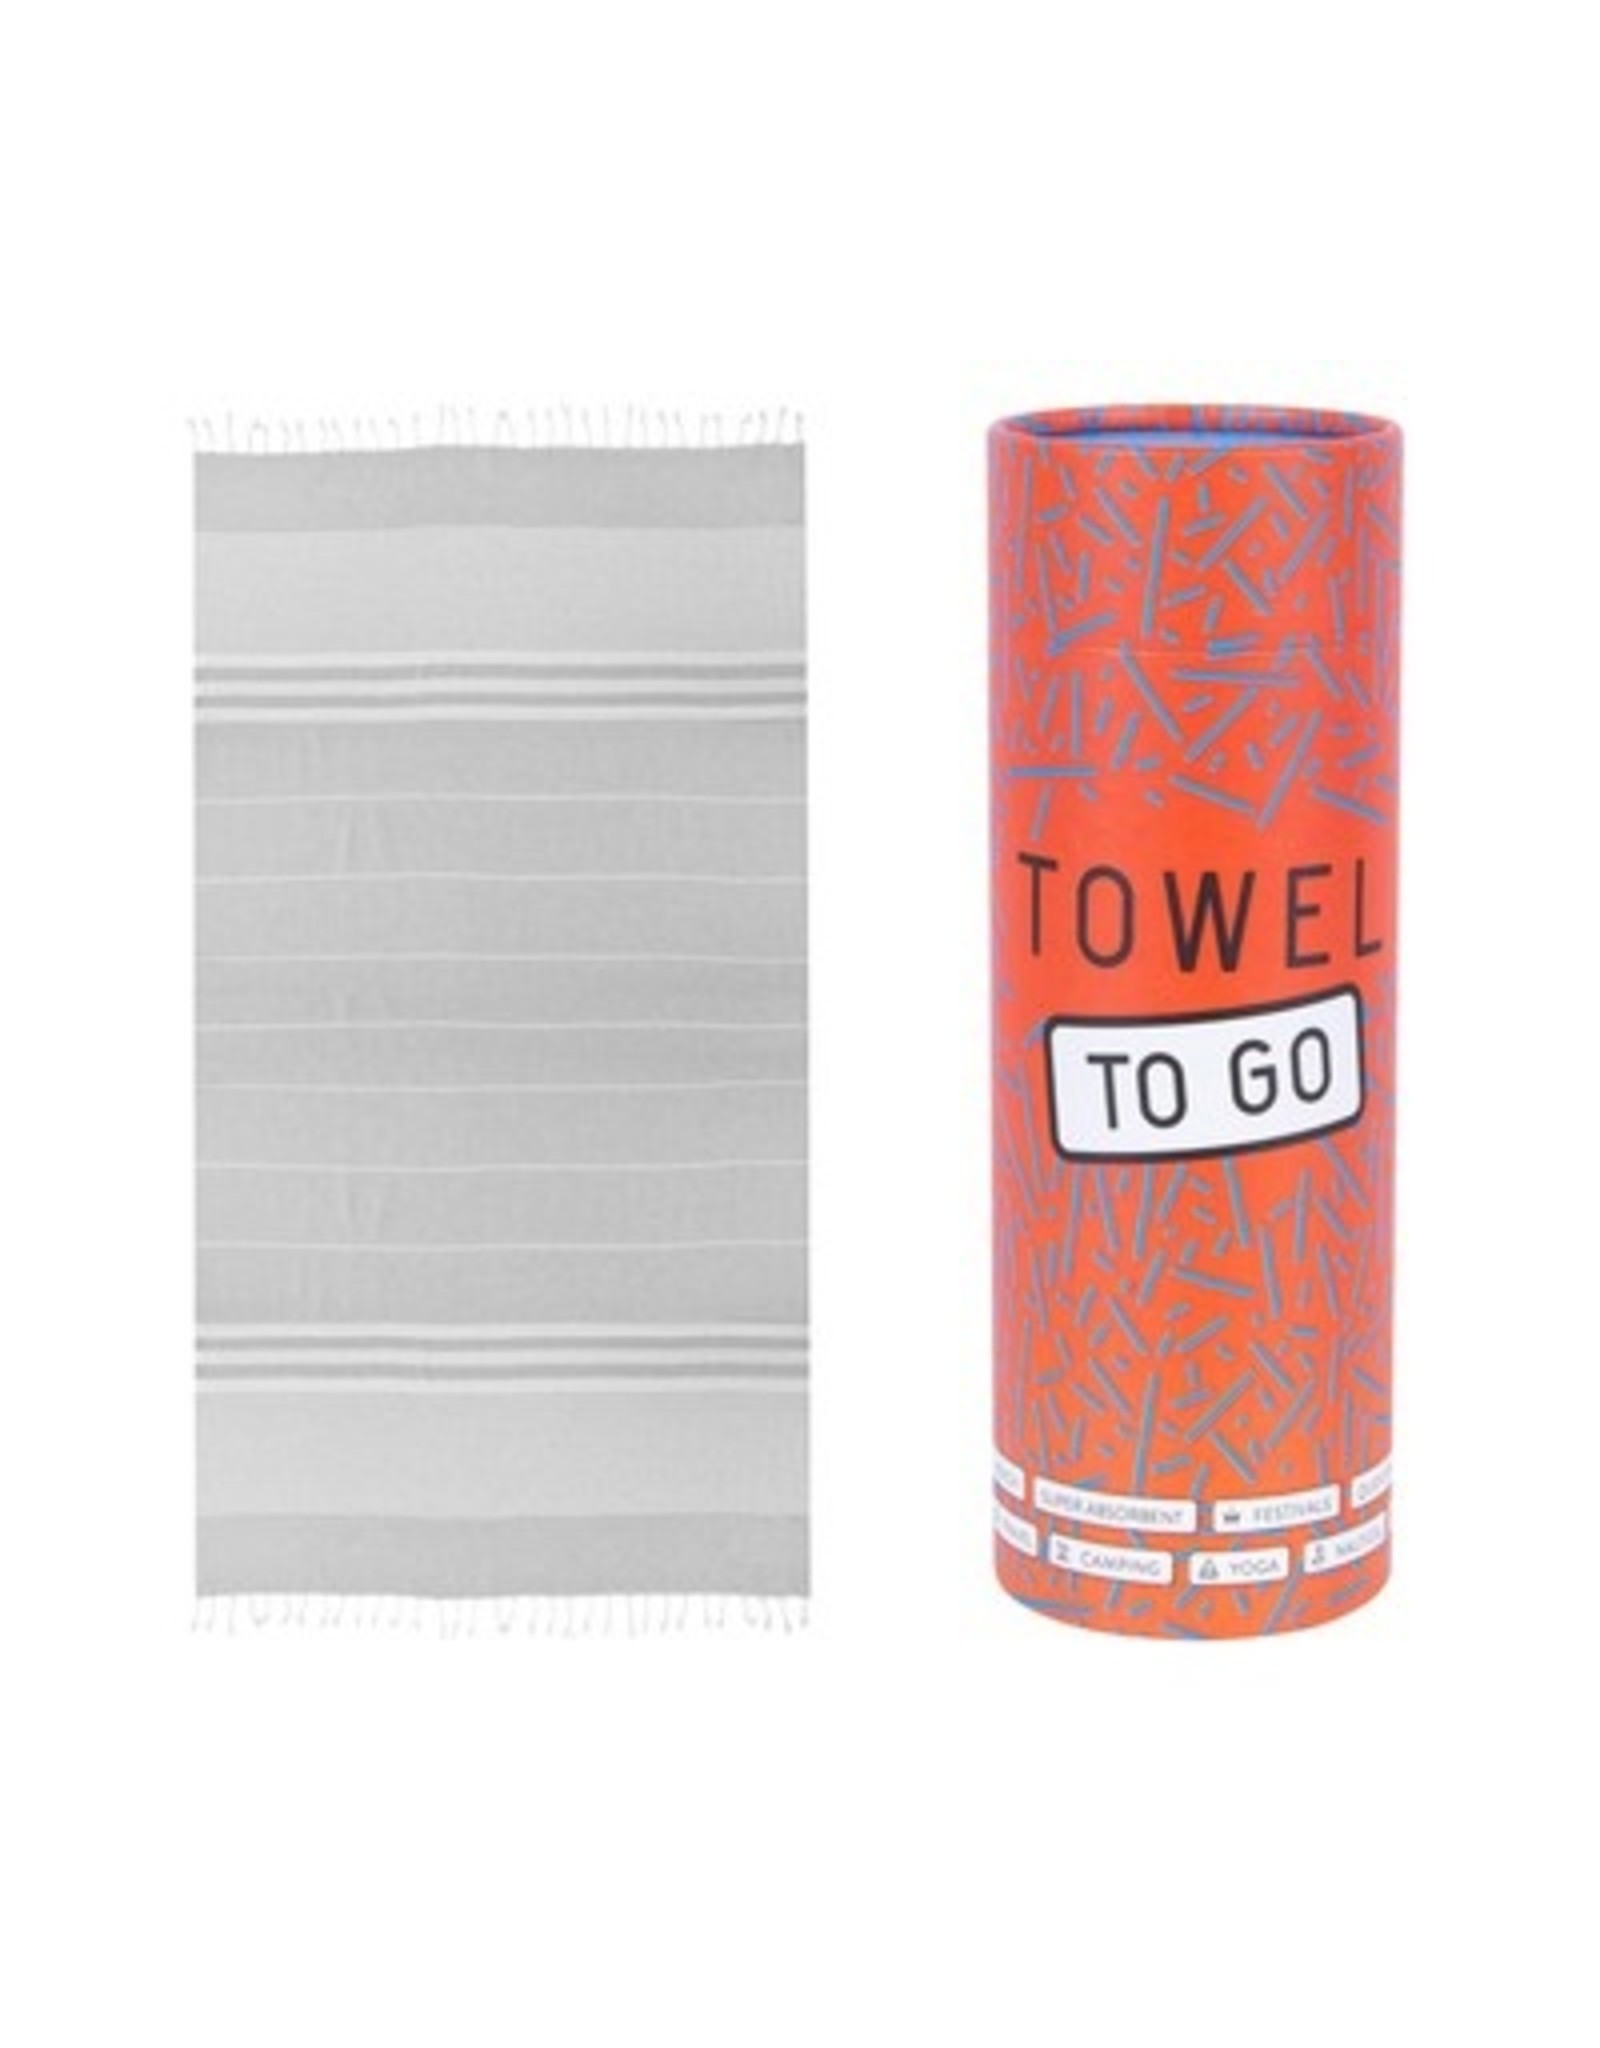 Towel to go Malibu grey 100%BW oeko tex